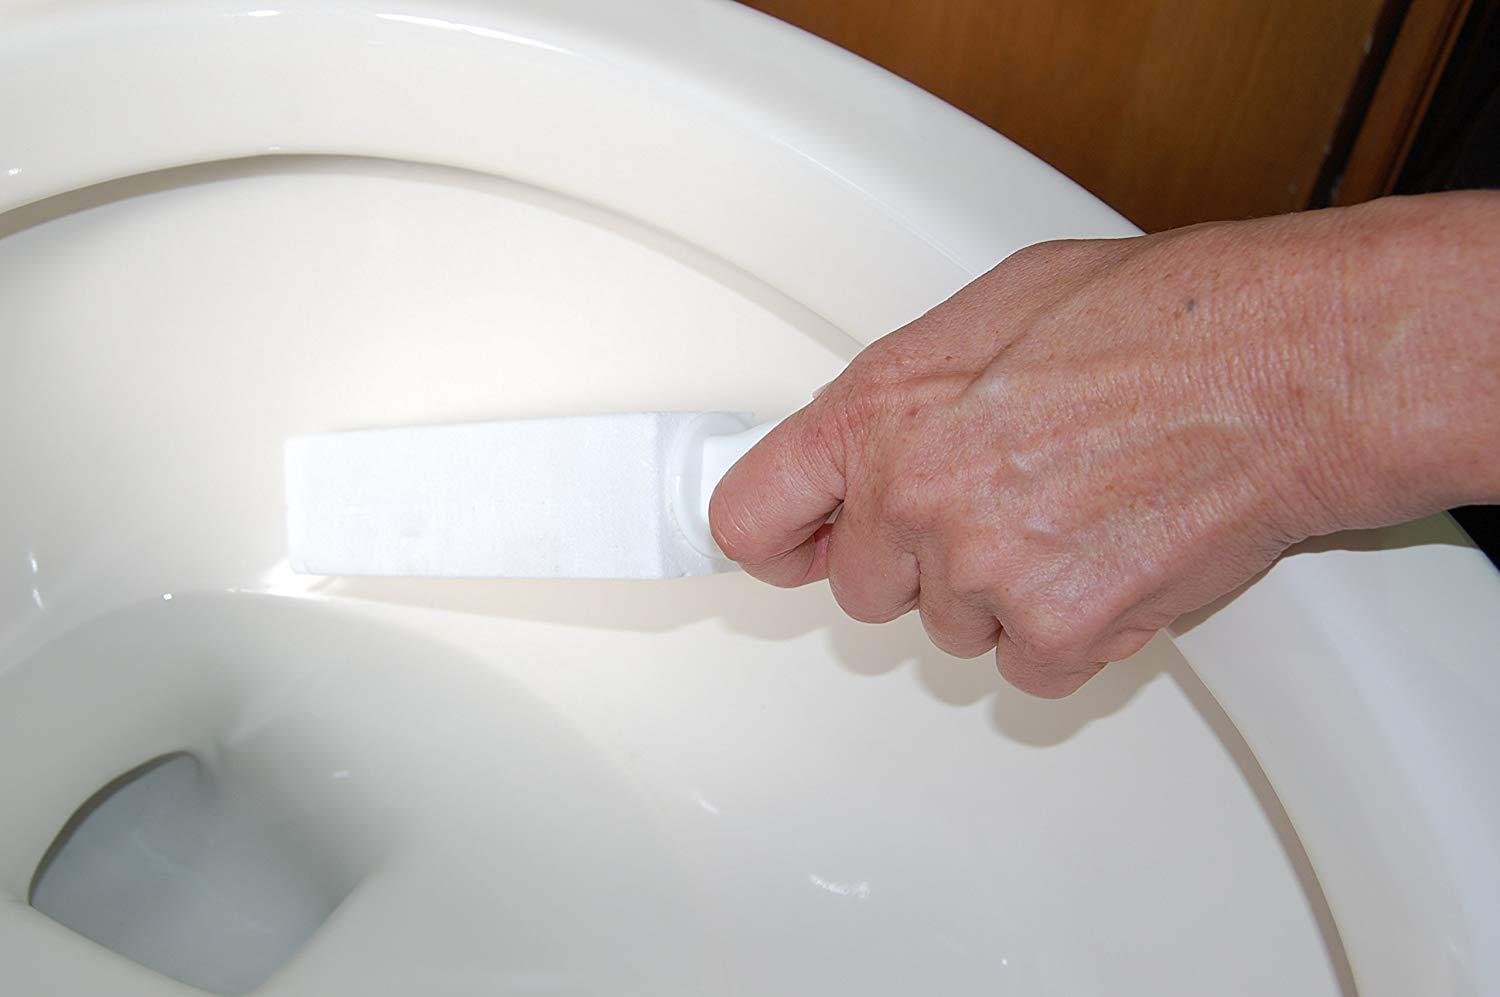 How to remove mineral deposits from the the toilet with a pumice stone